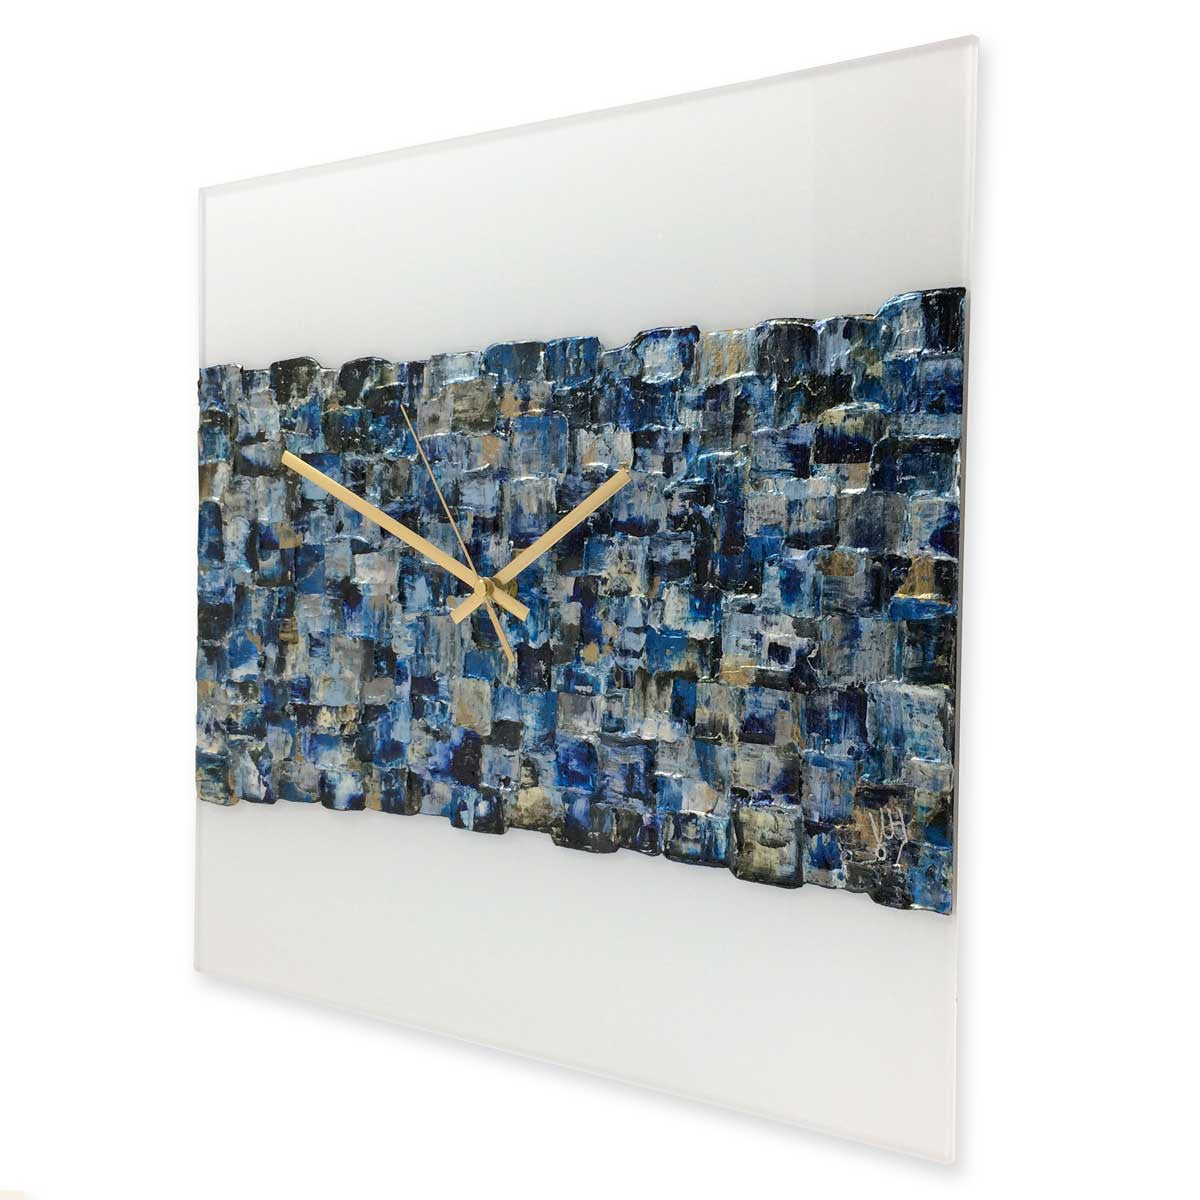 Square 40cm abstract wall clock on white plexiglass - JLH40SQ1